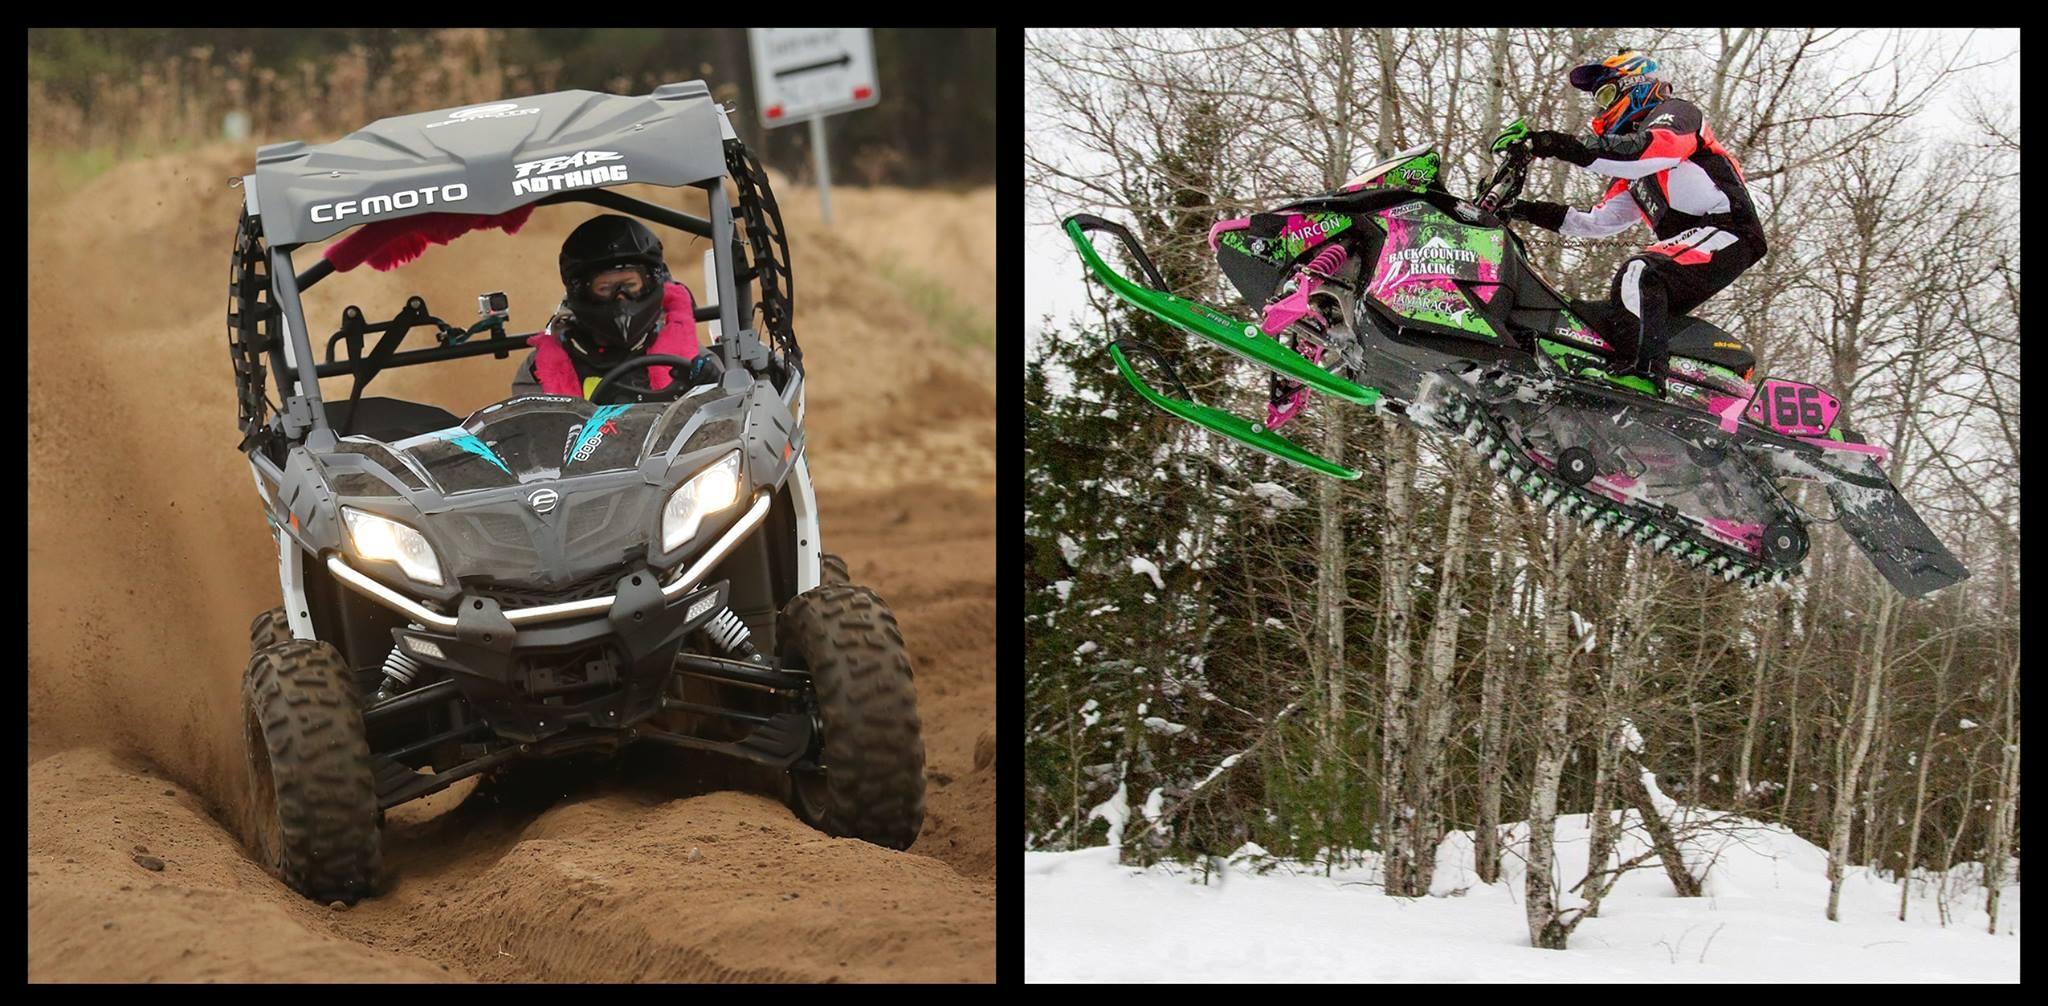 Shelby is also a highly skilled SXS and Snowmobile racer.